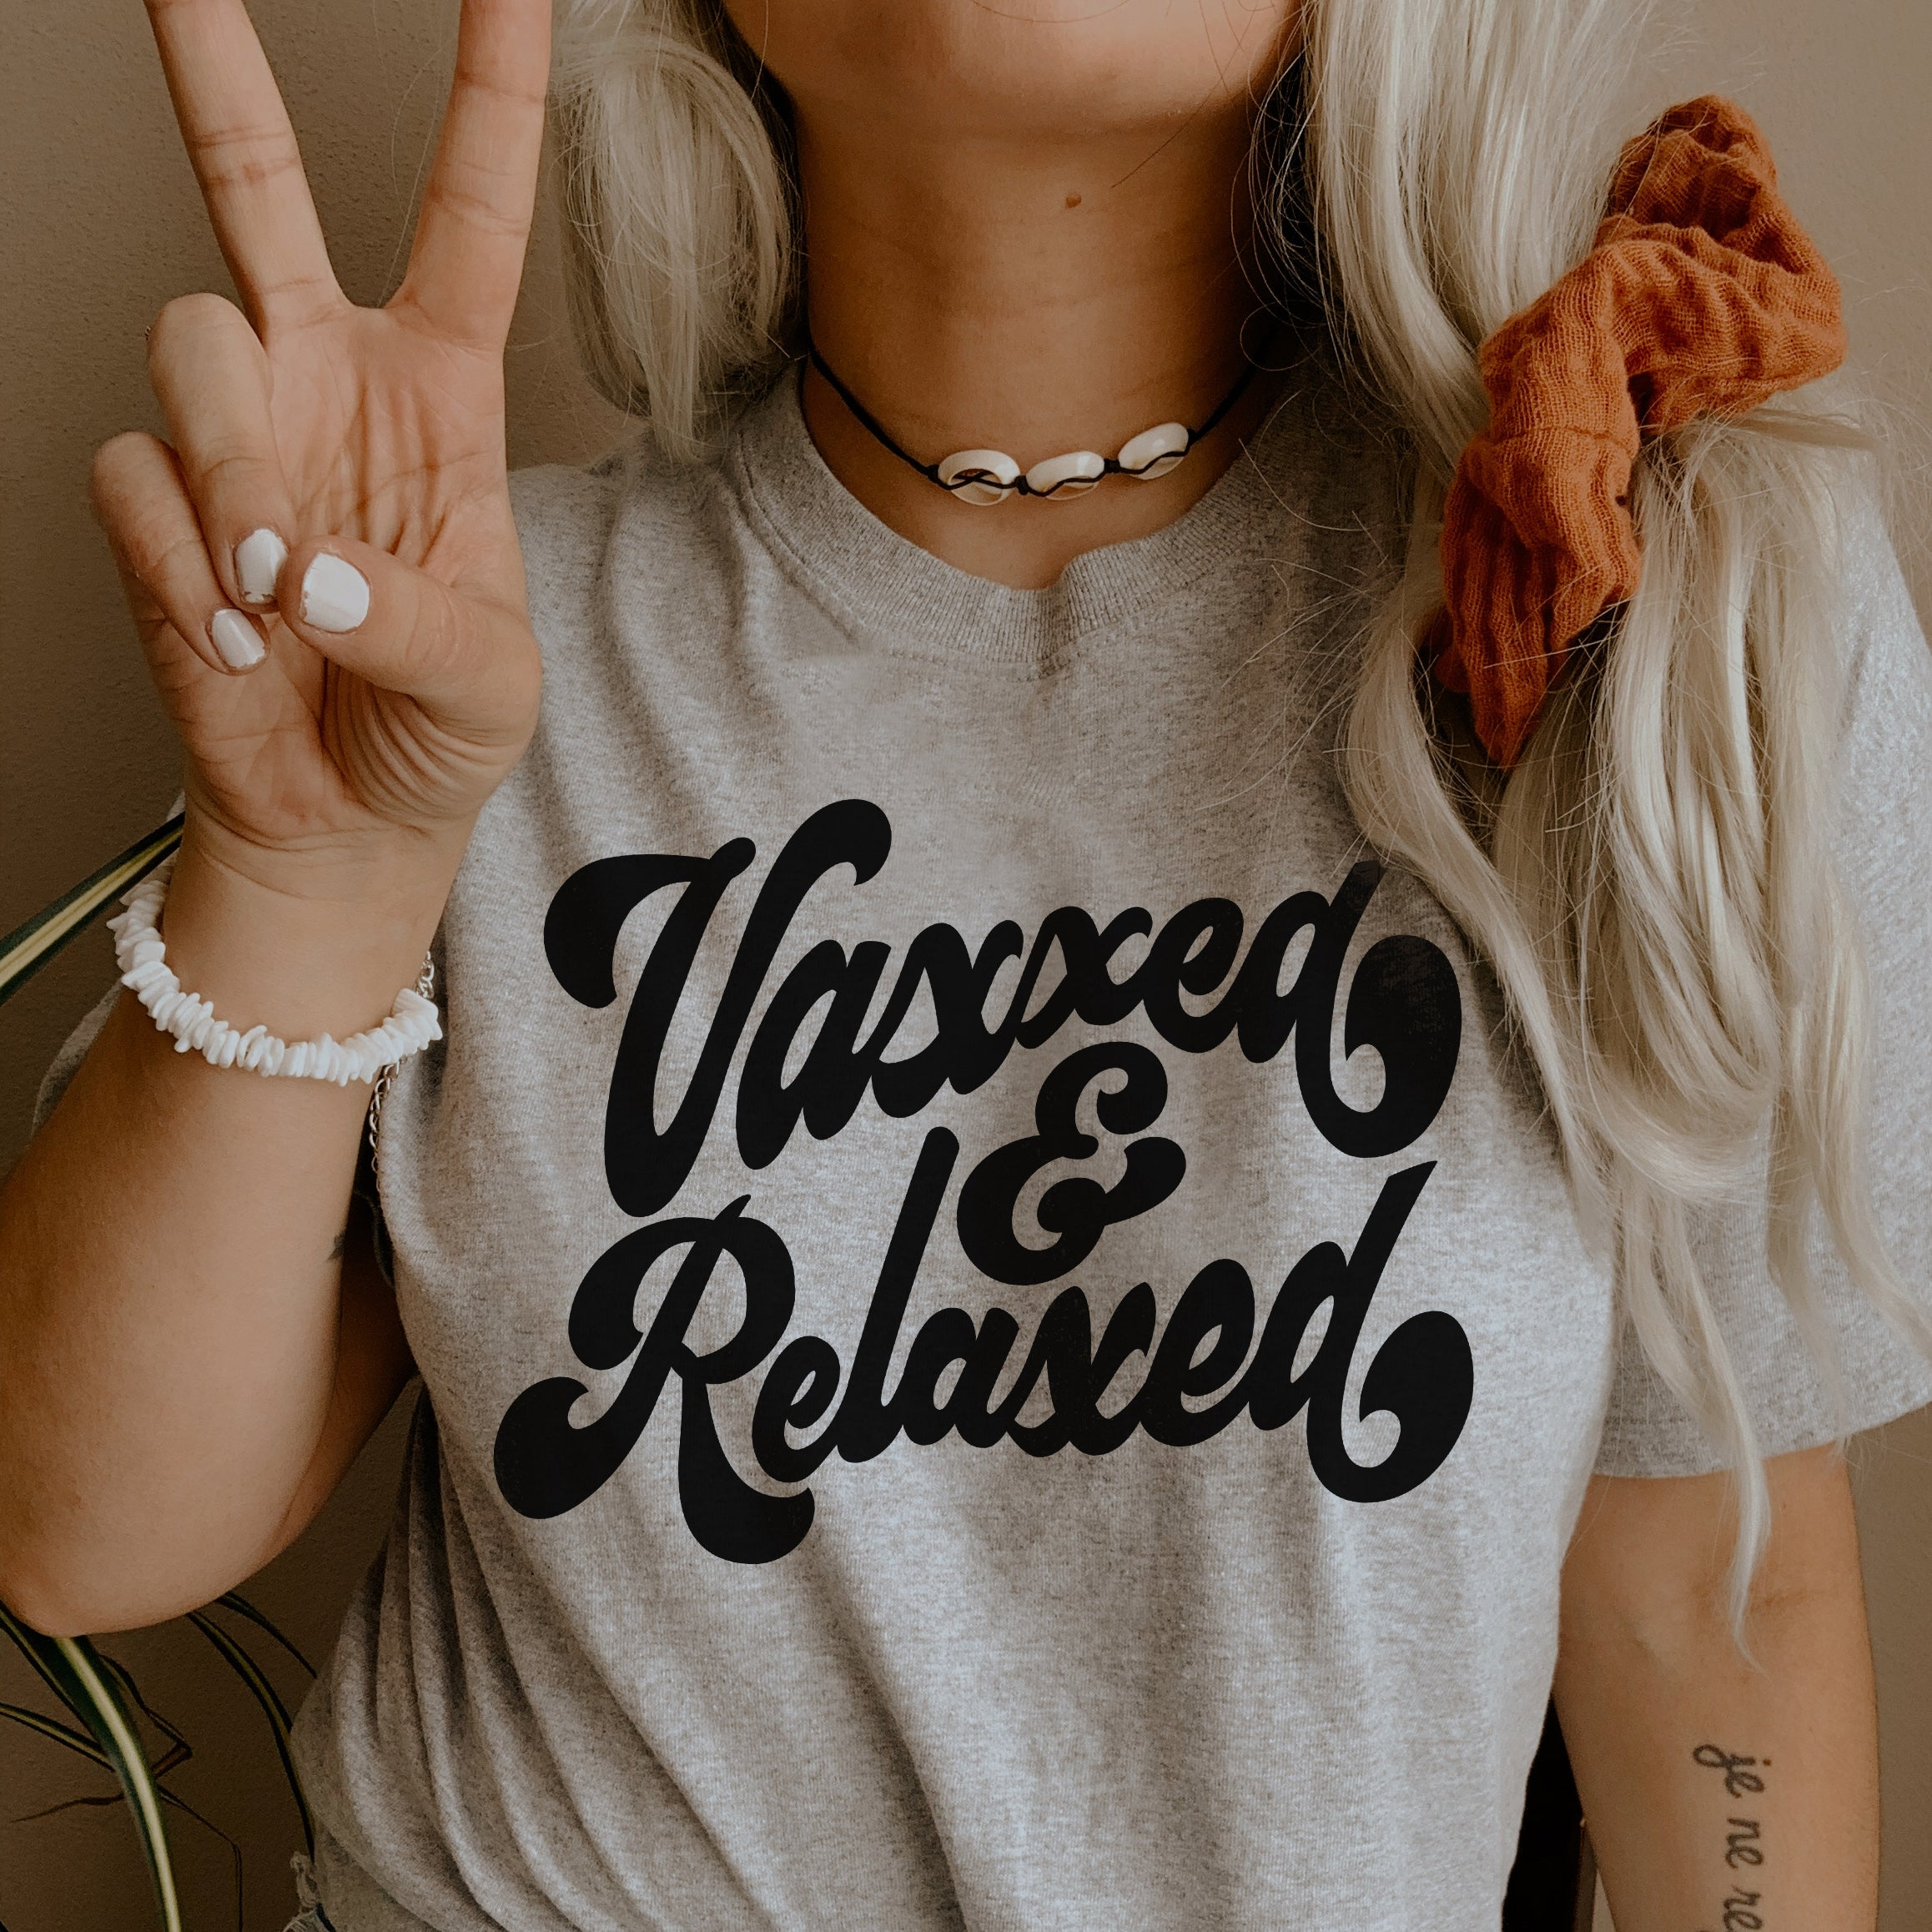 Vaxxed and Relaxed Shirt - Vaccinated Shirt - Vaccine Shirt Unisex SS